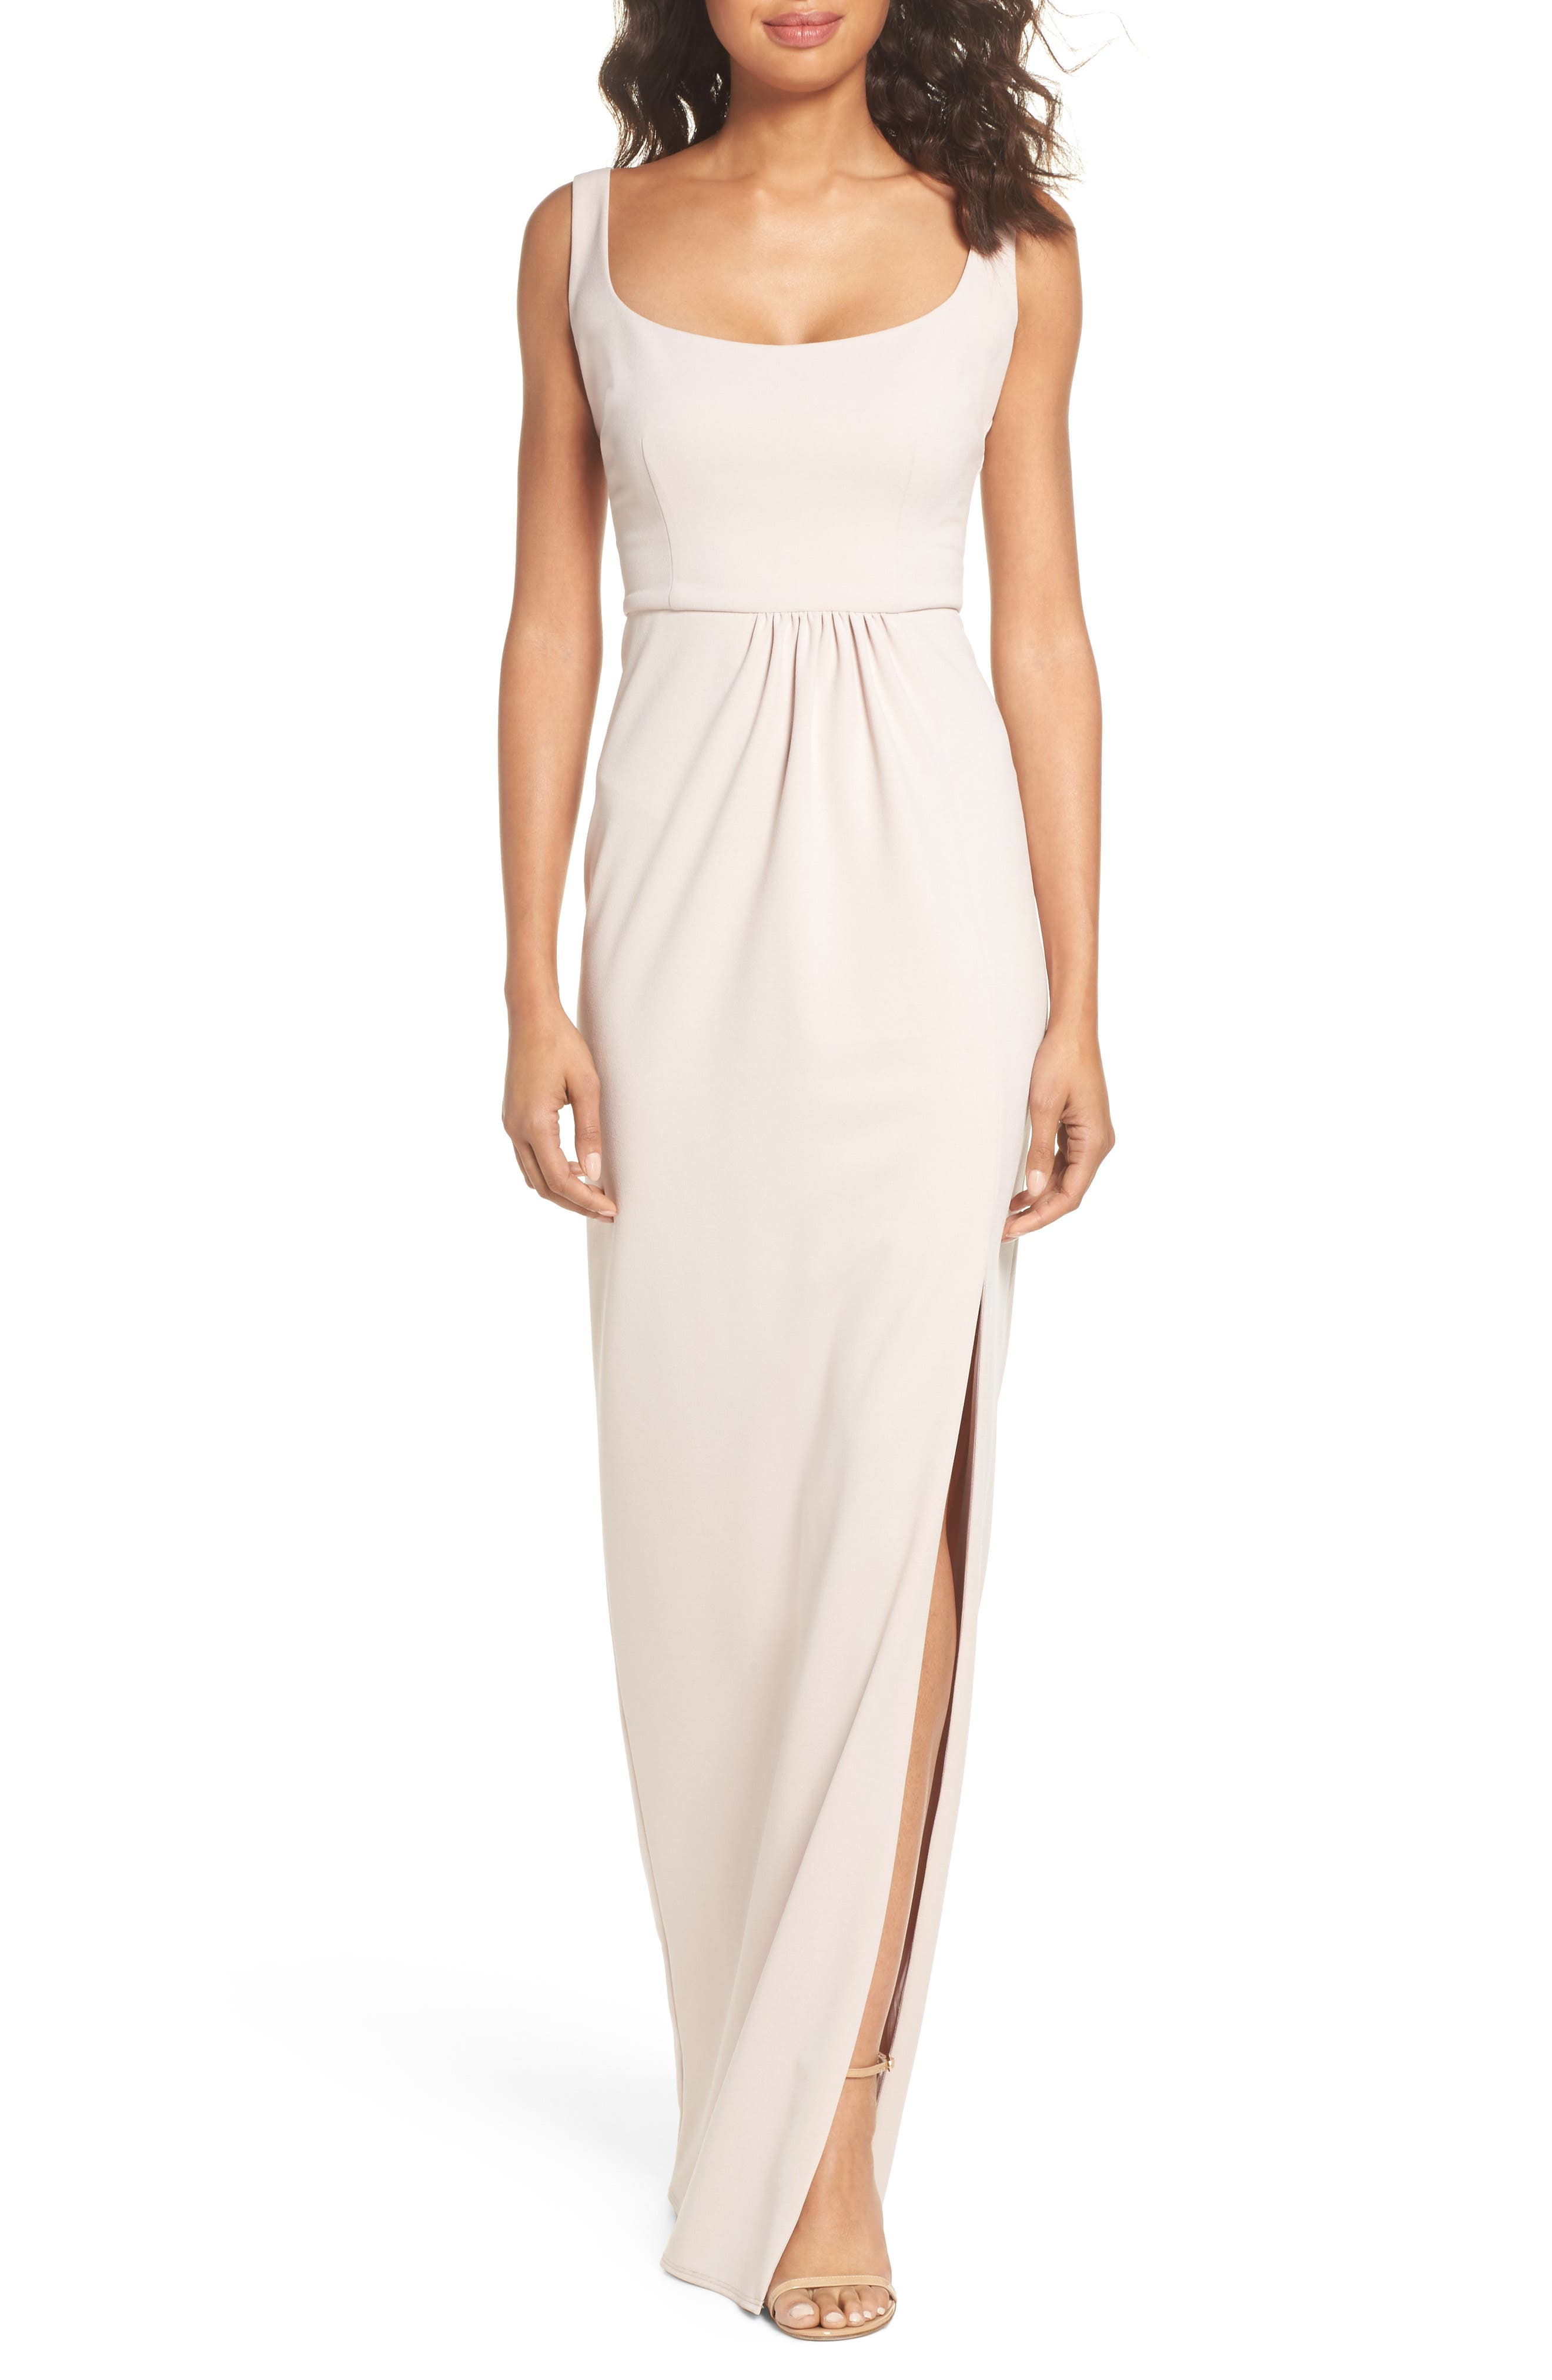 Katie May Open Back Scoop Neck Gown